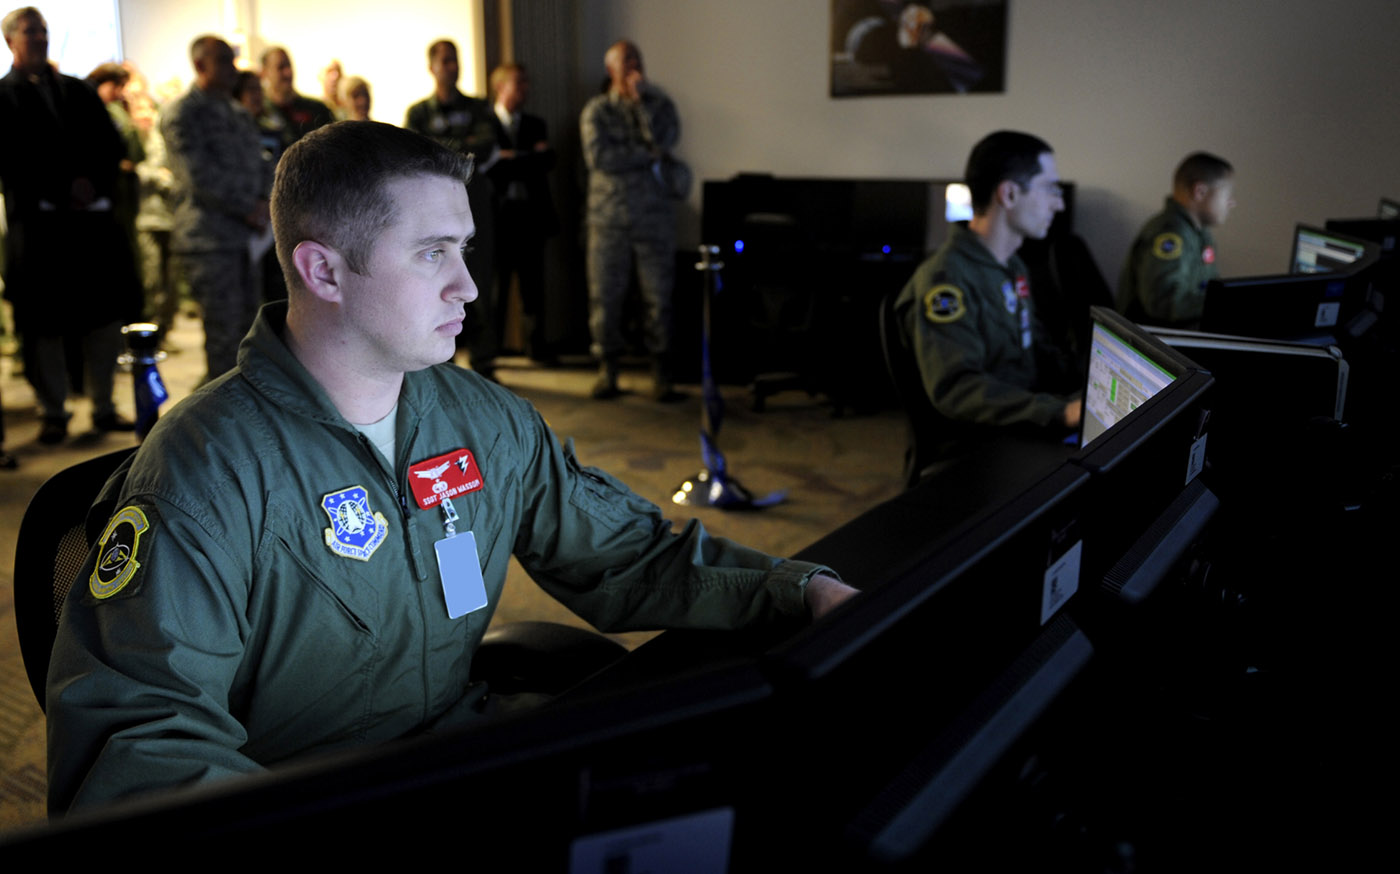 Staff Sgt. Jason Wassom, 3rd Space Operations Squadron, sits at a student station in the new Space Trainer Integrated Training Center following the ribbon cutting and official opening of the new system. (U.S. Air Force photo/Dennis Rogers)